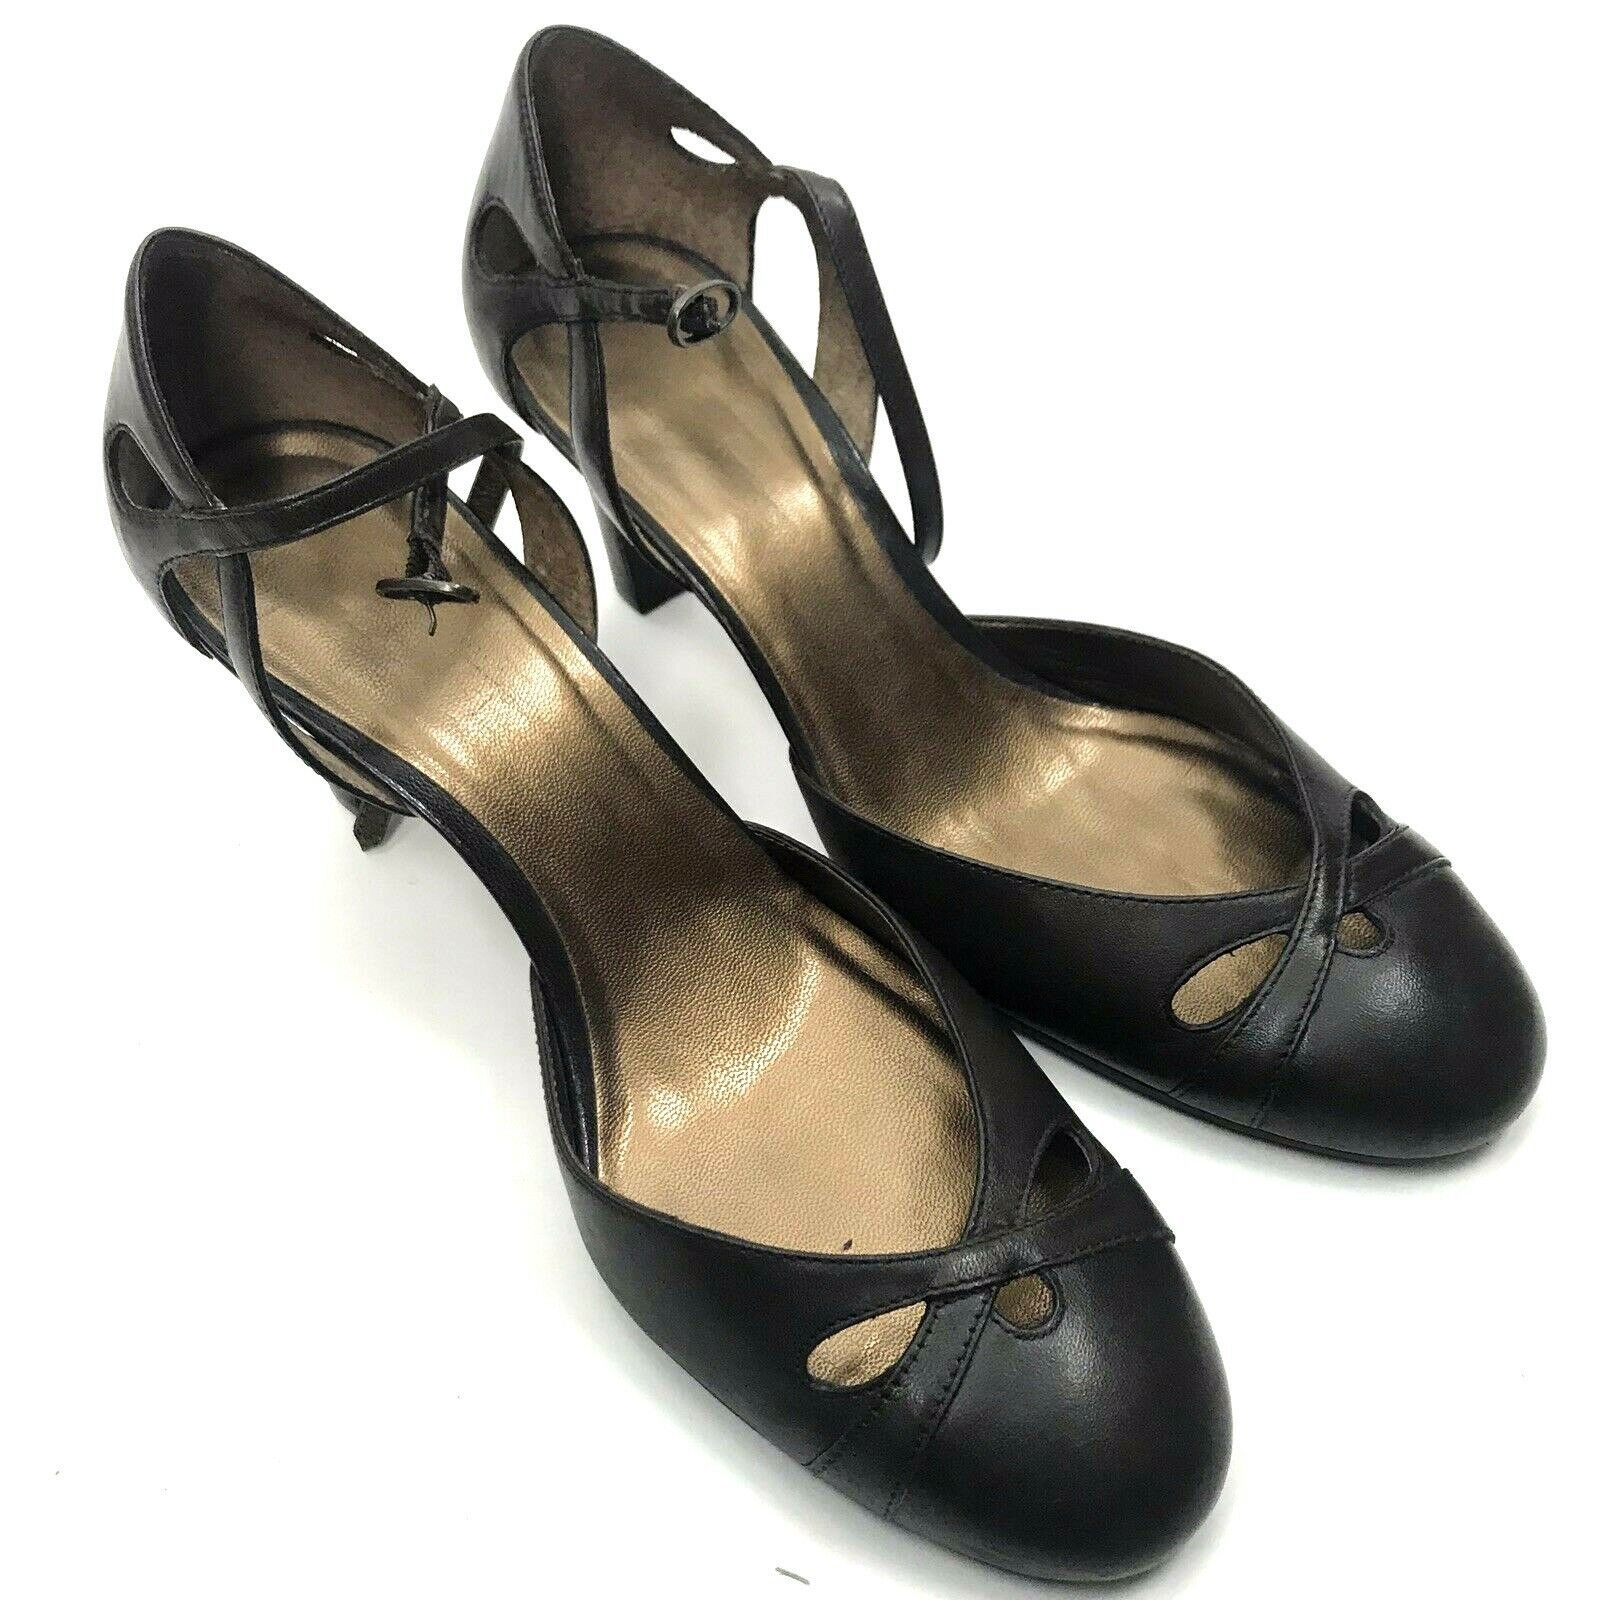 Ann Taylor Loft Womens Sz 8 Brown Leather Mary Jane Heels Pumps Straps Career - $28.01